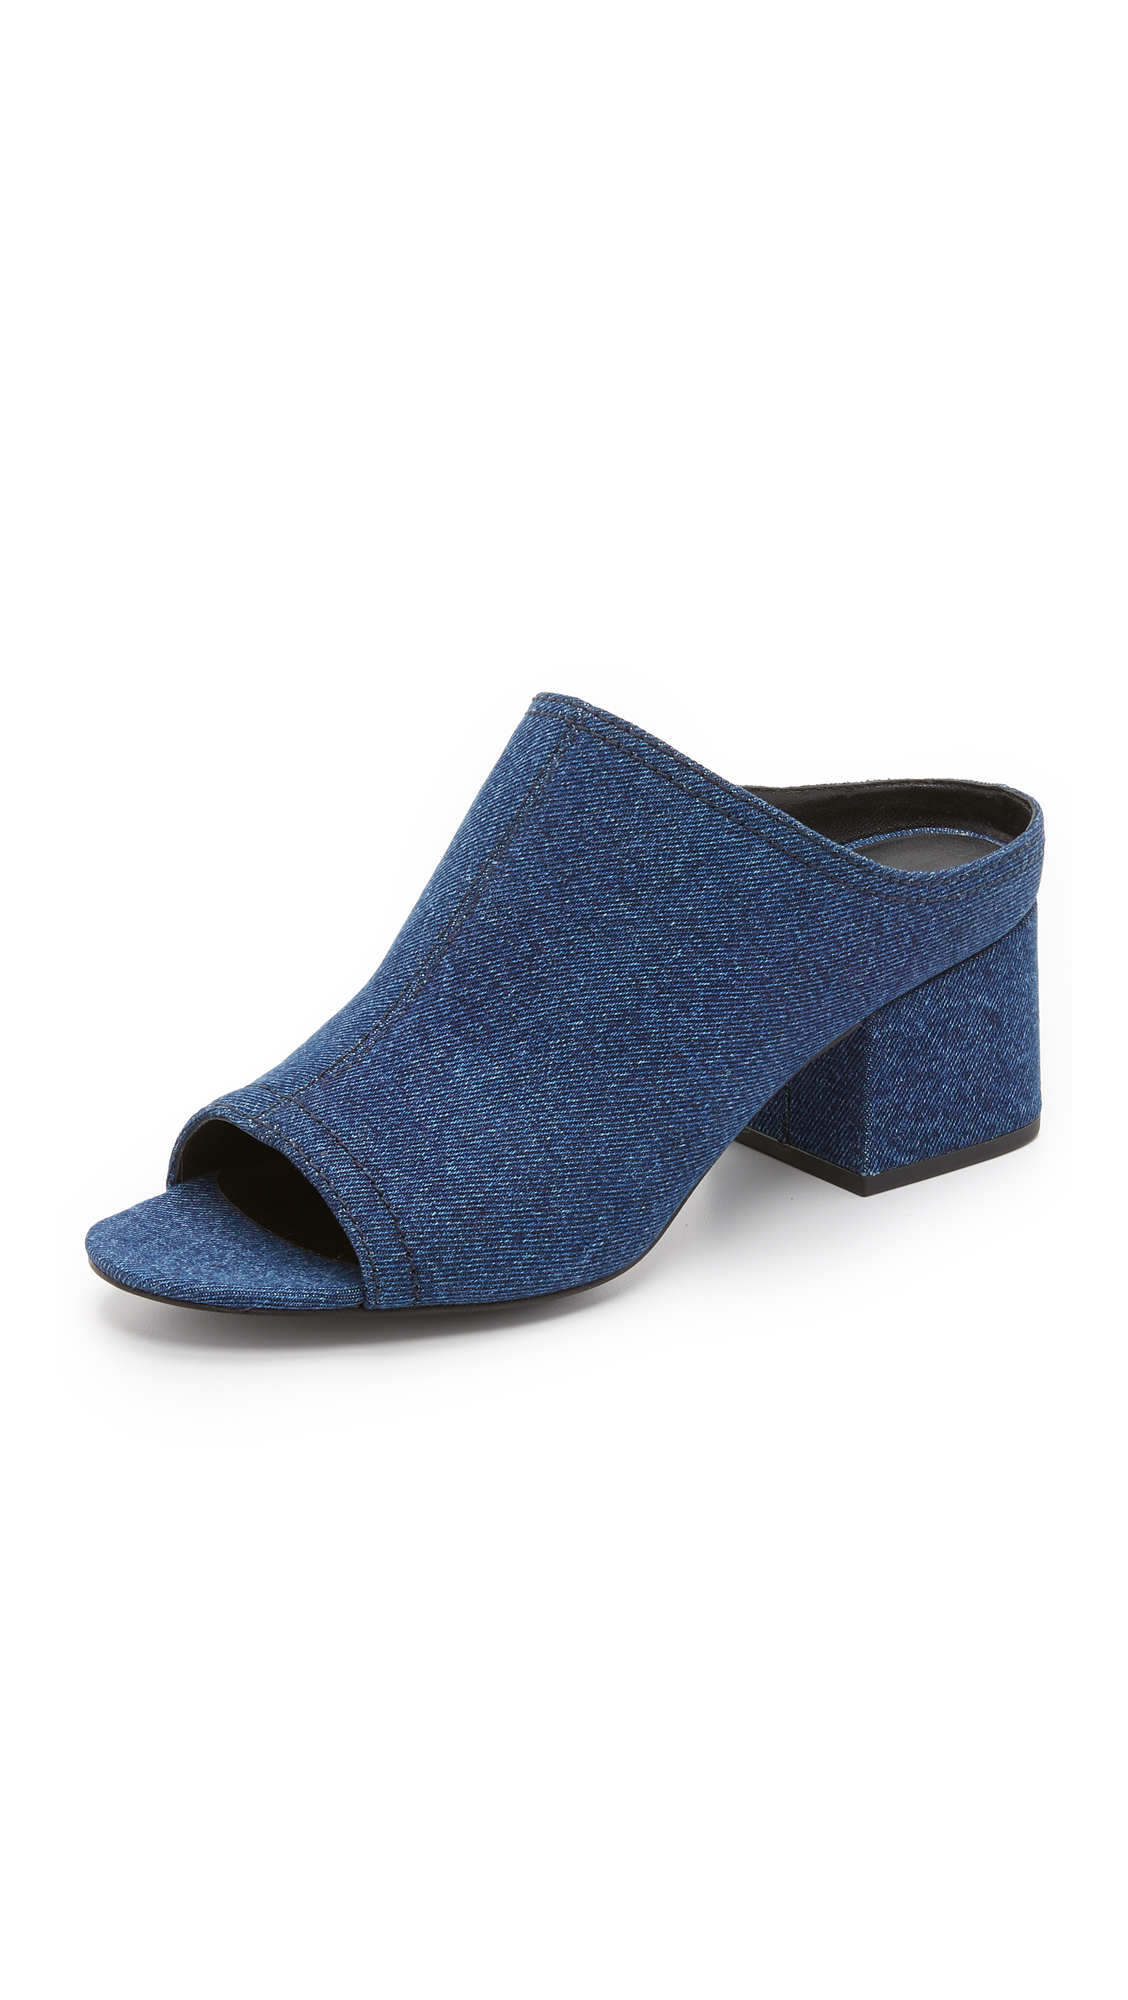 CUBE DENIM BLOCK-HEEL MULE SANDAL, LIGHT DENIM